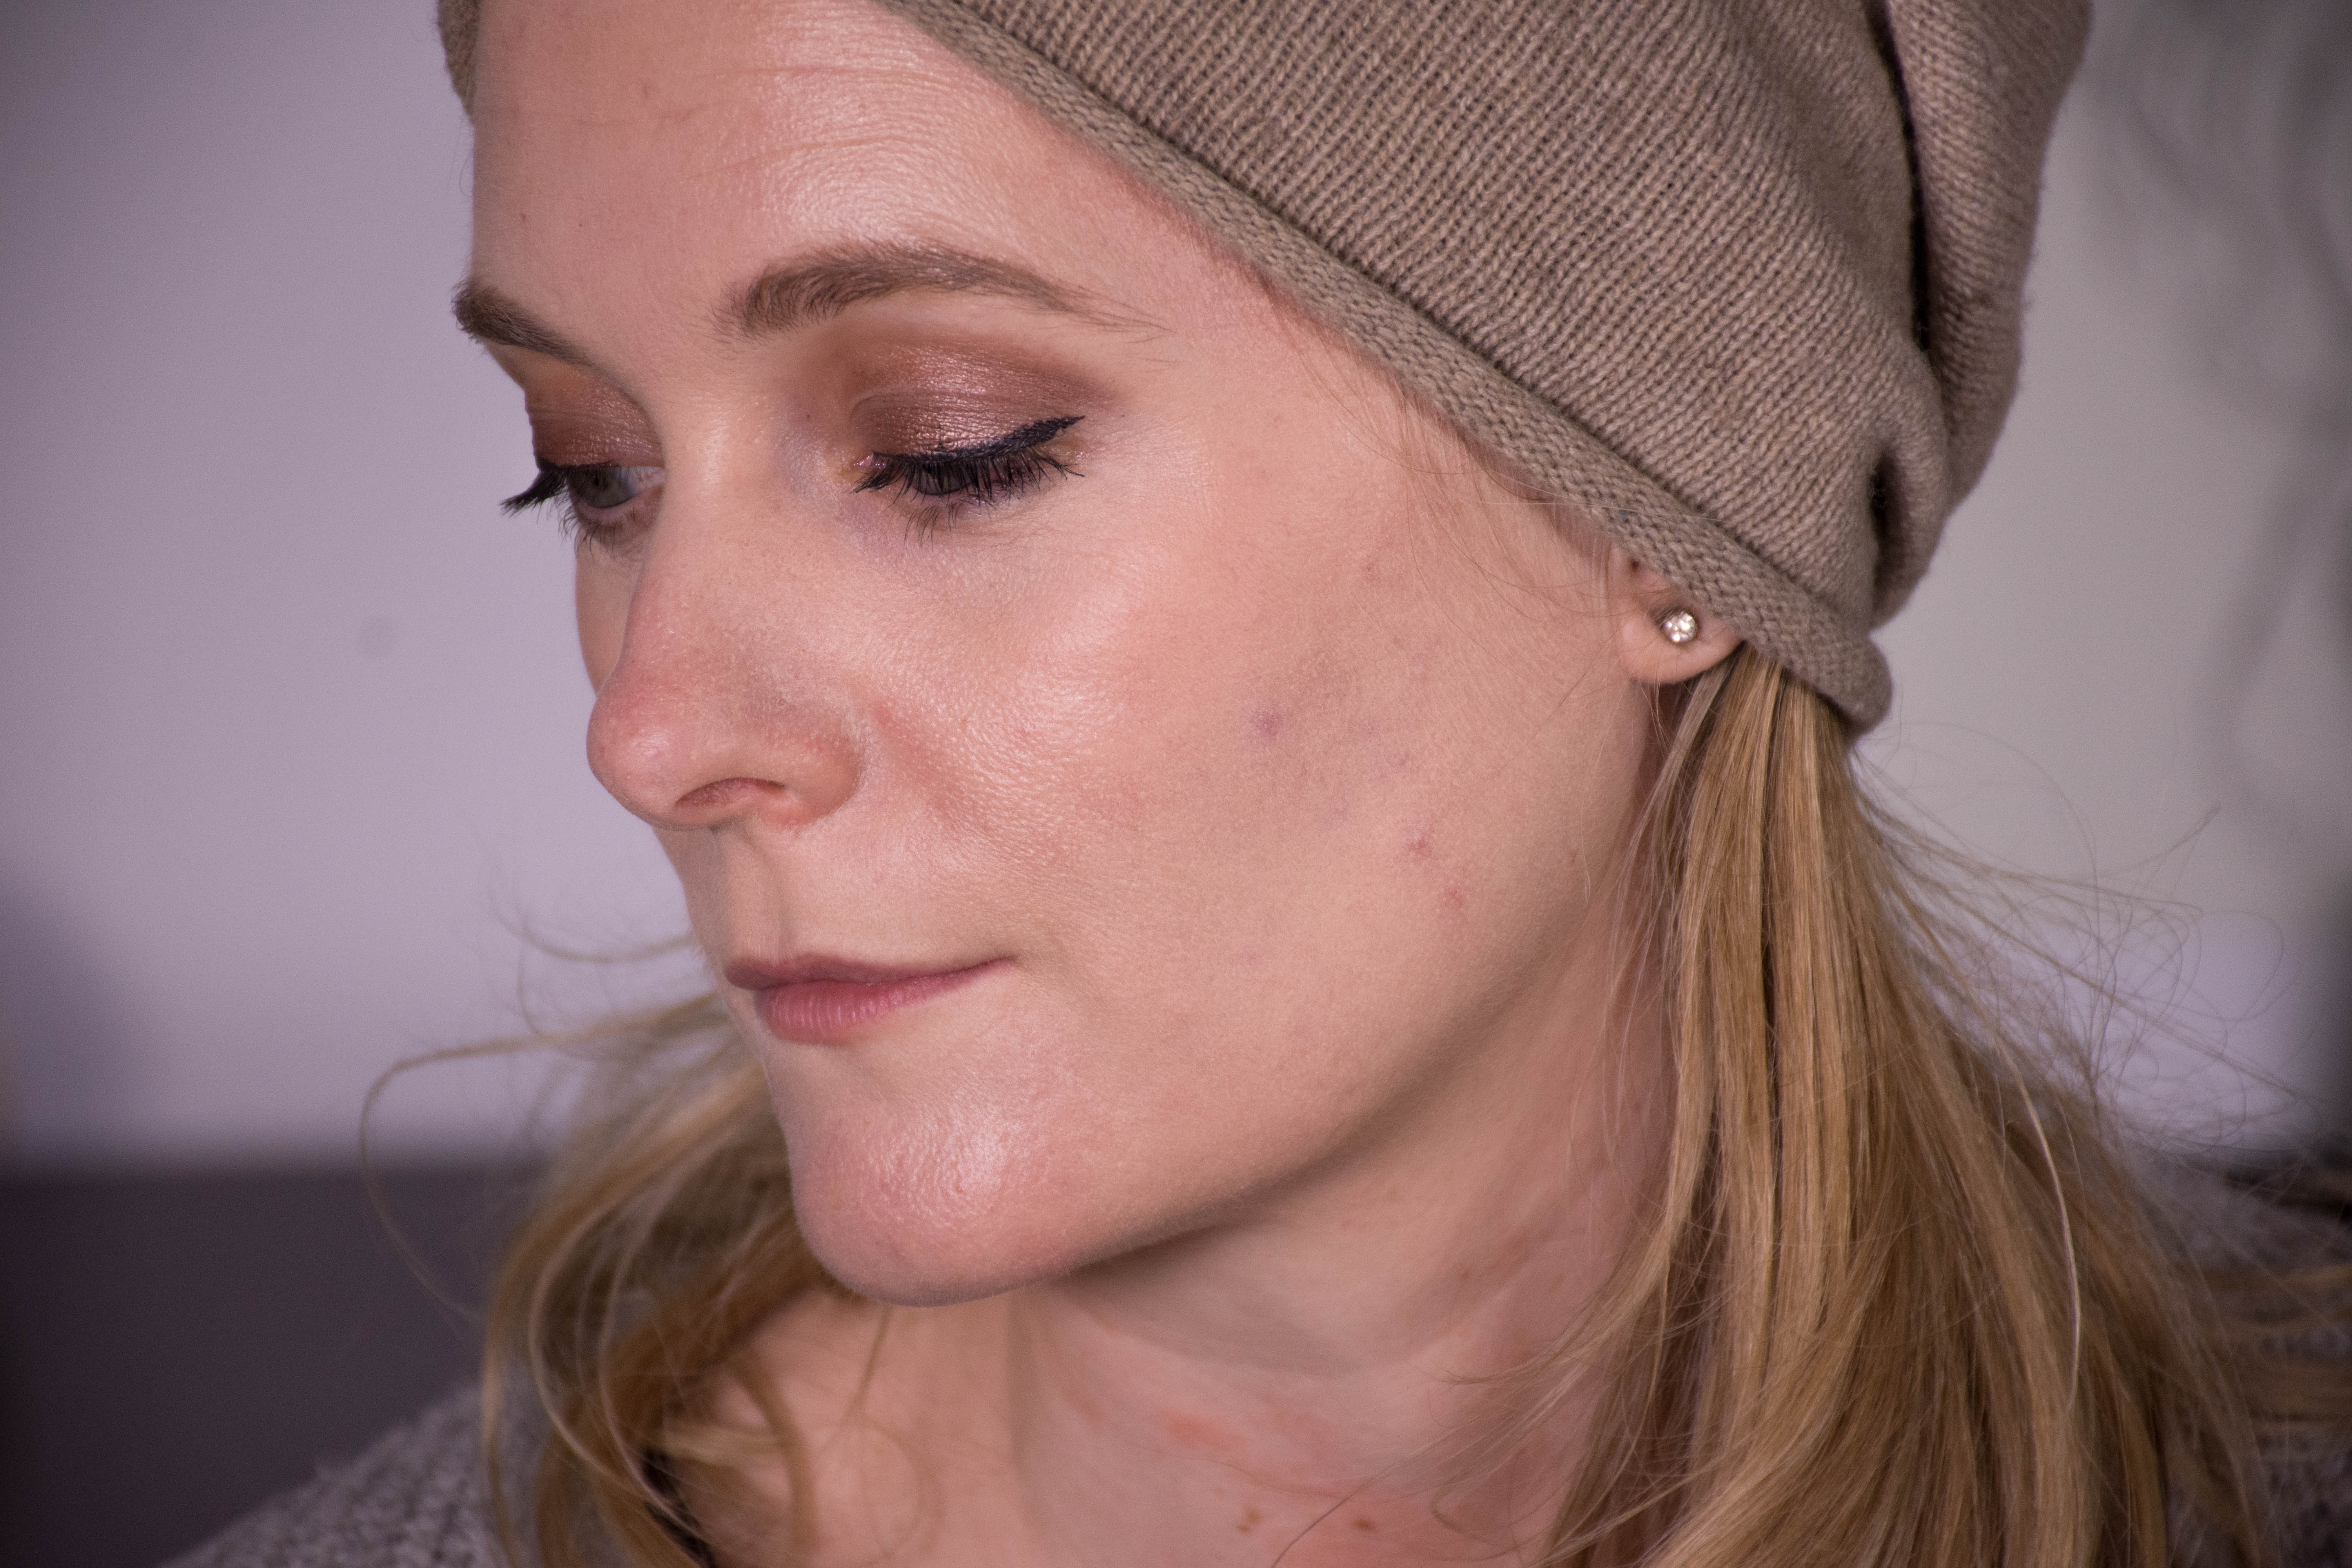 The Sephora Matte Perfection Foundation at ten hours of wear.